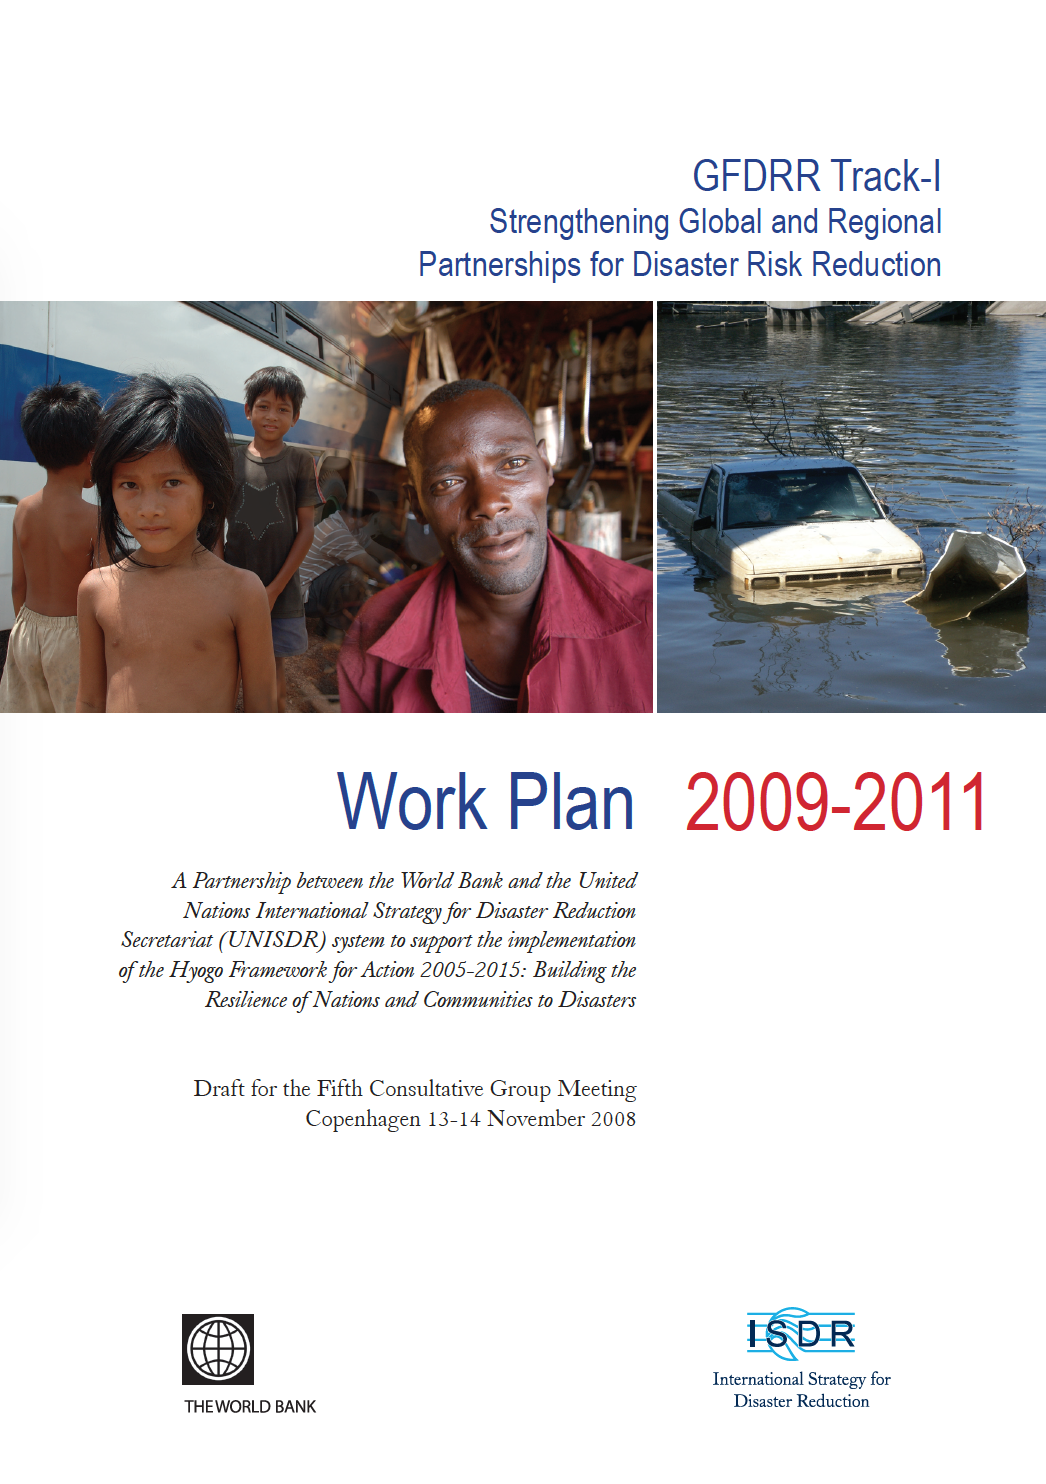 This is the cover for the Work Plan 2009 to 2011